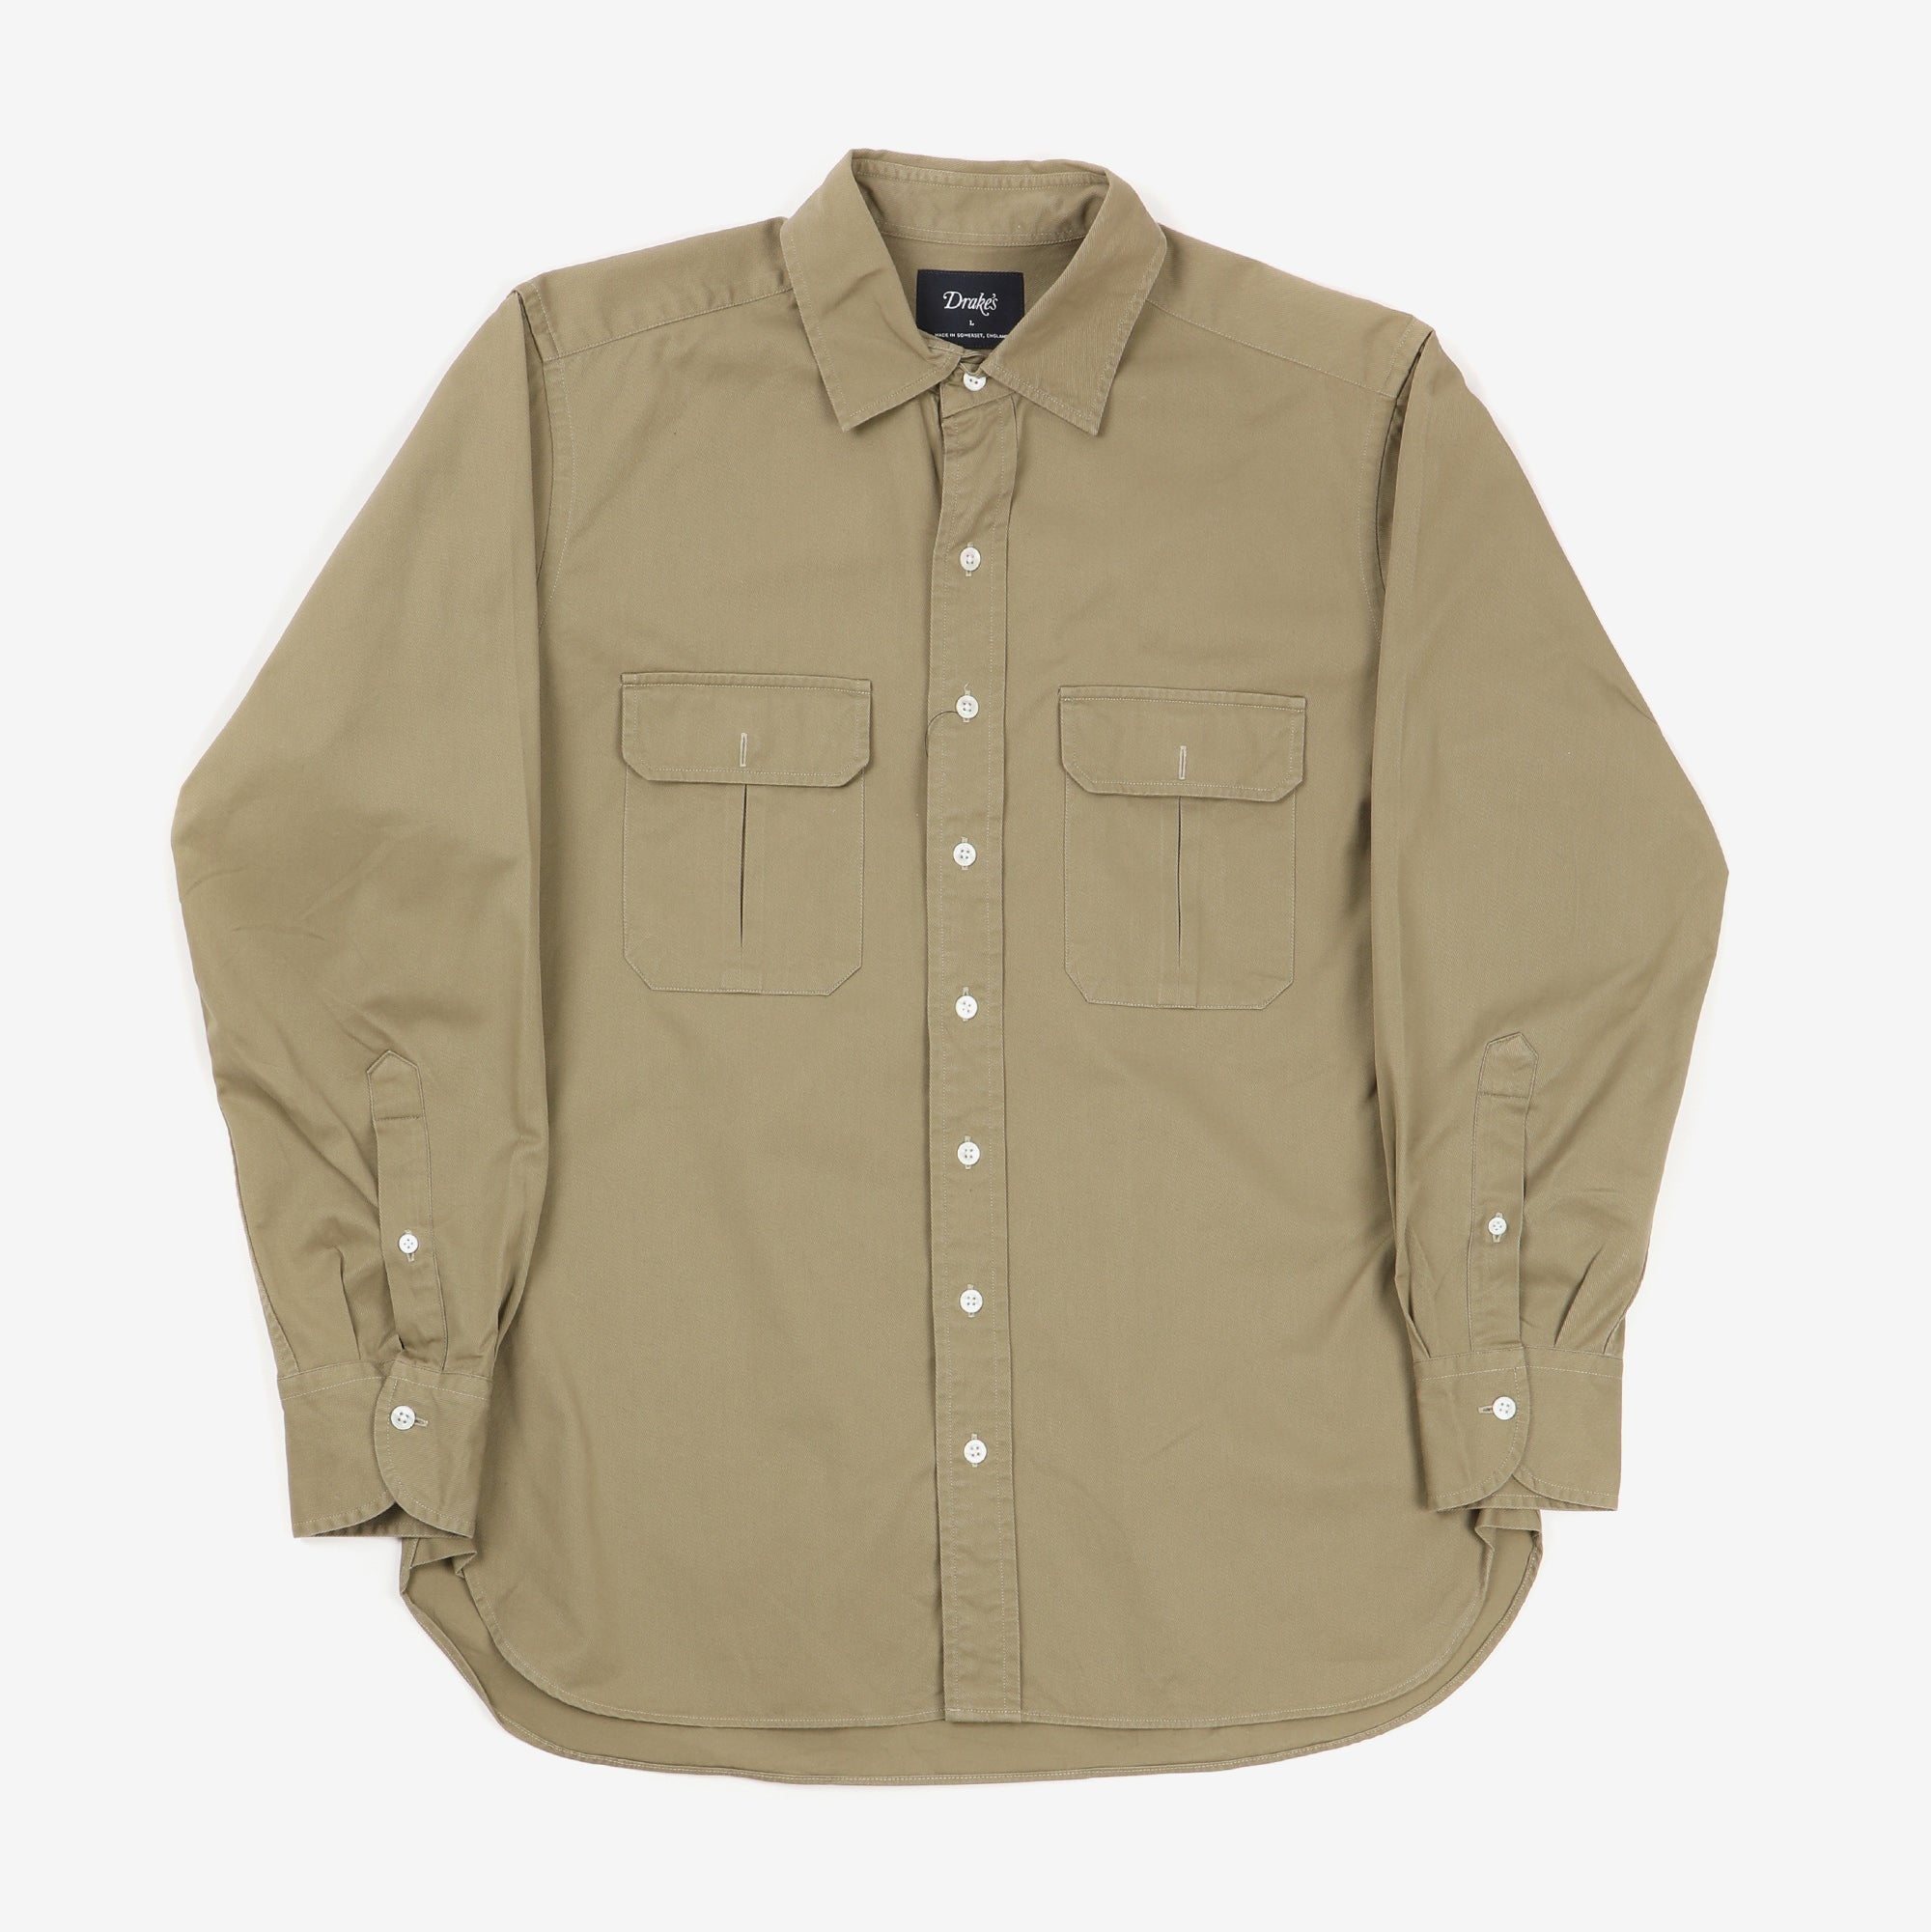 Durable Cotton Work Shirt